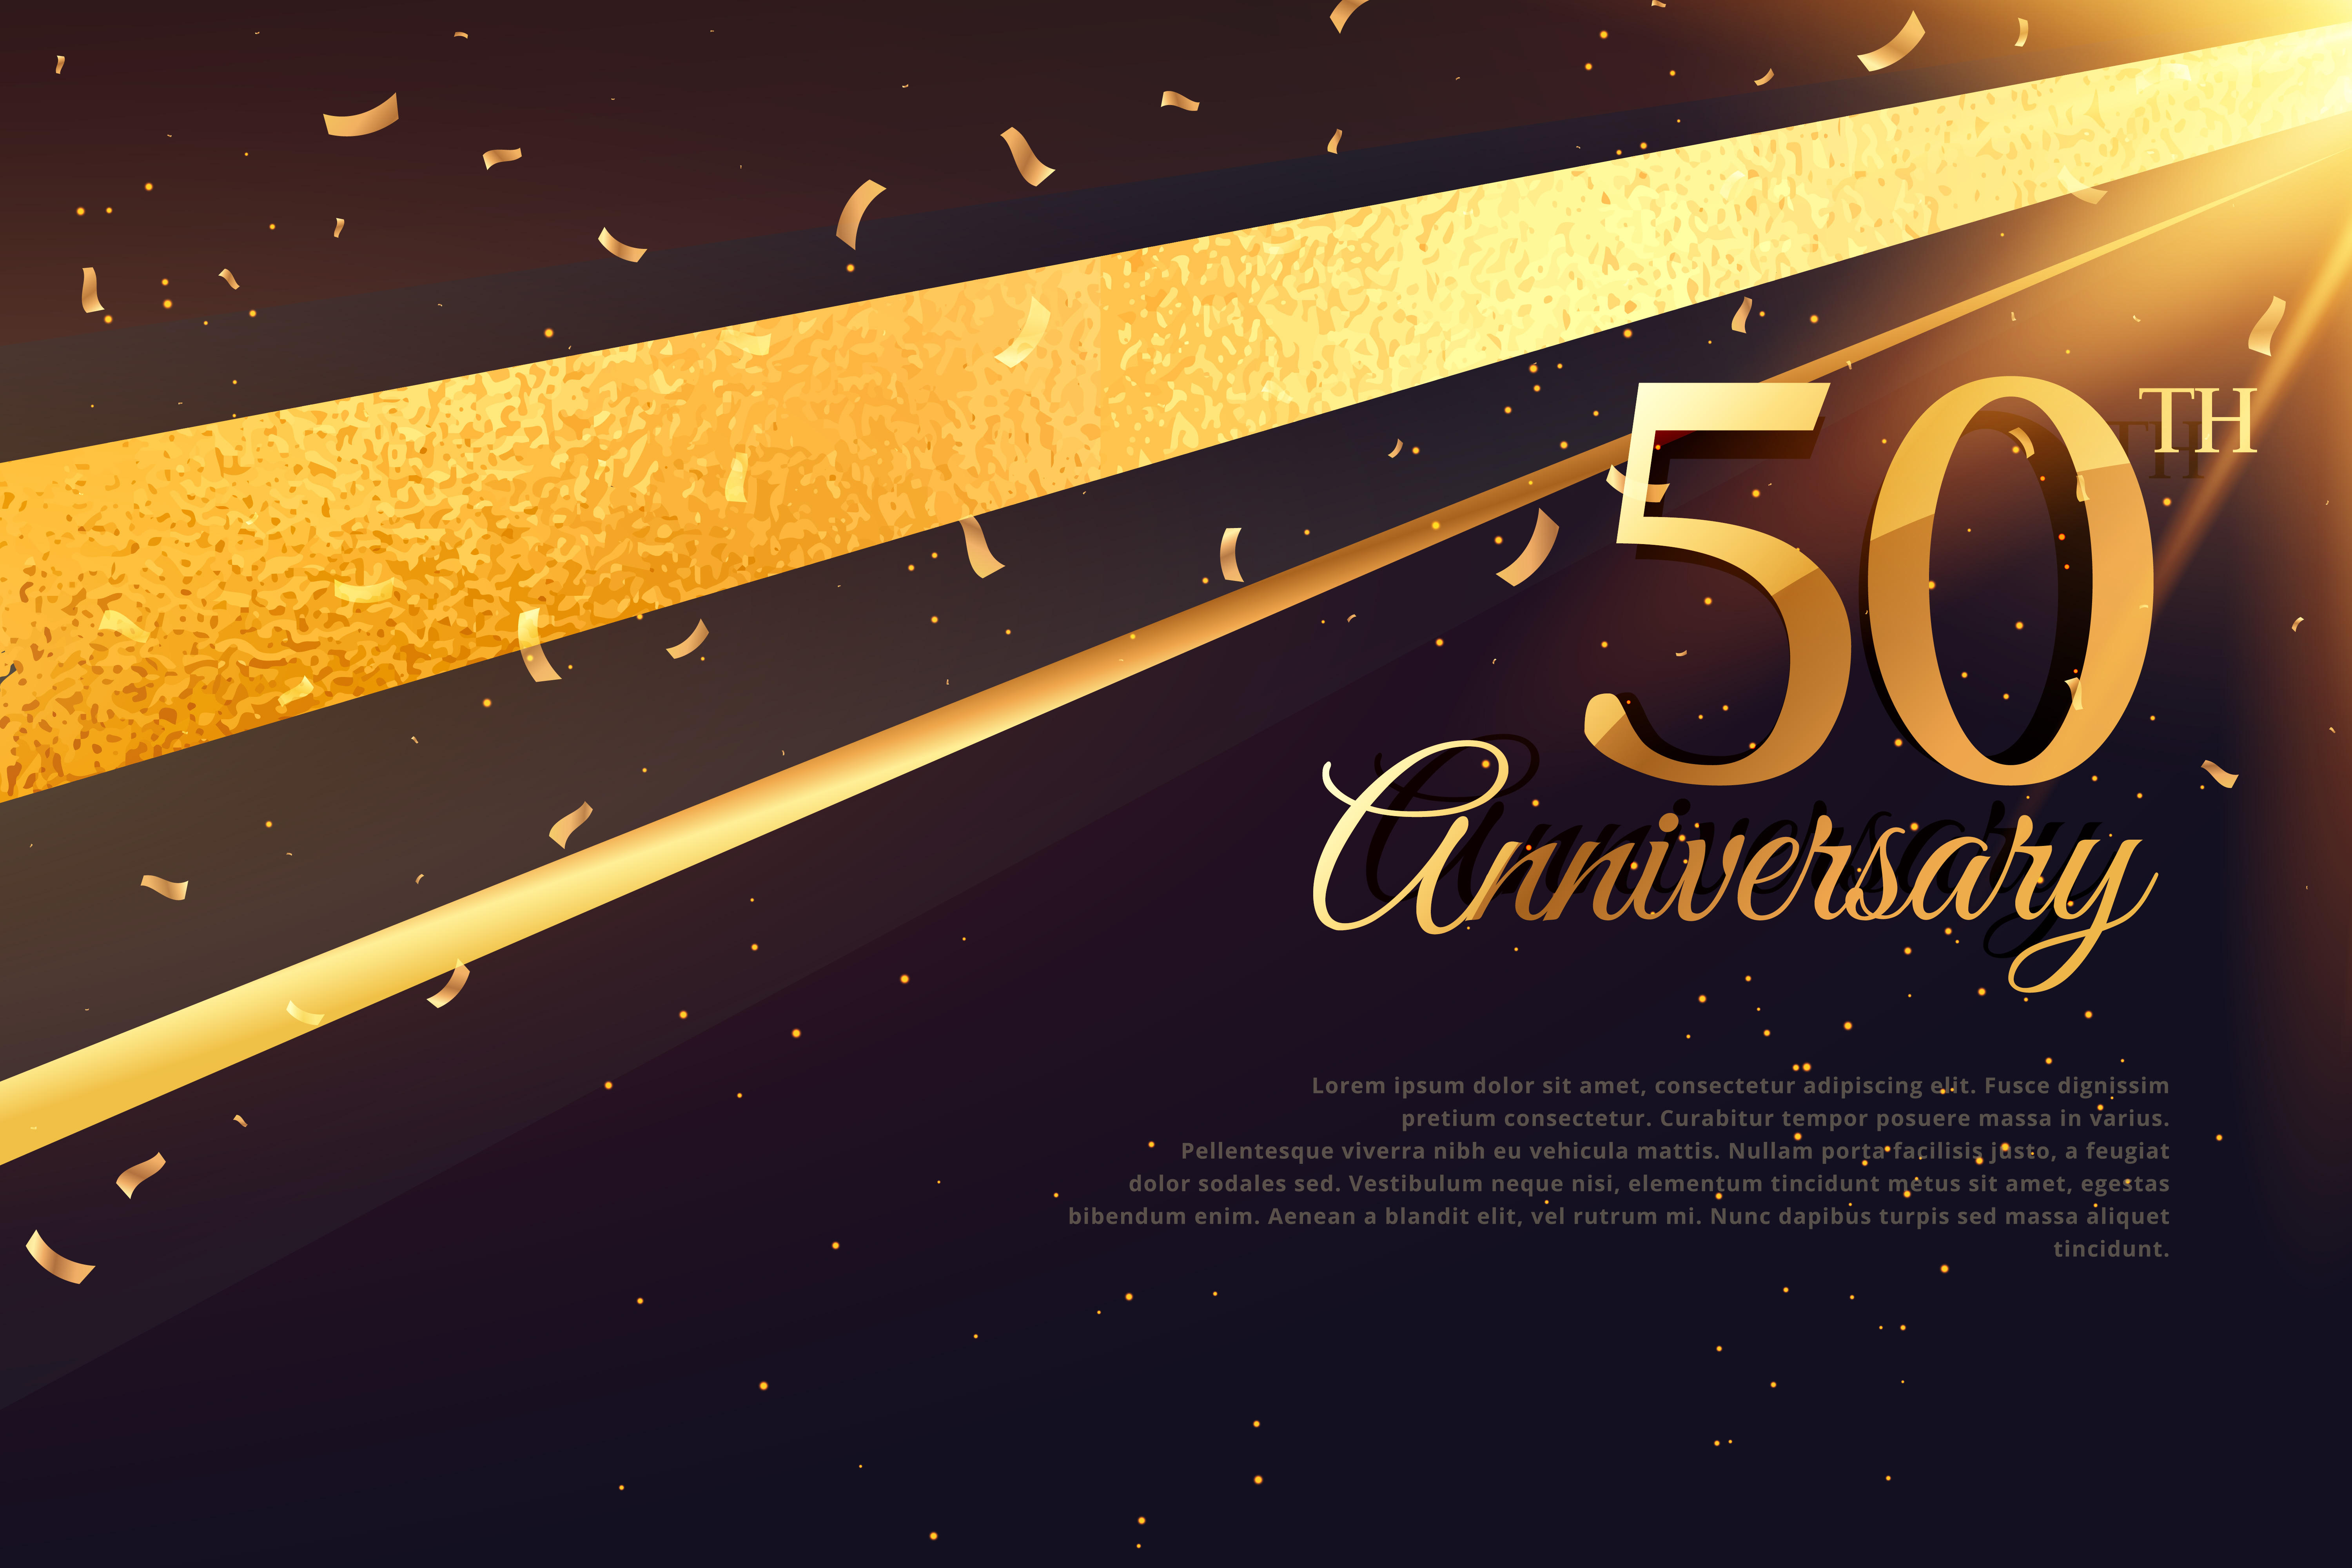 50th Anniversary Free Vector Art 1290 Free Downloads